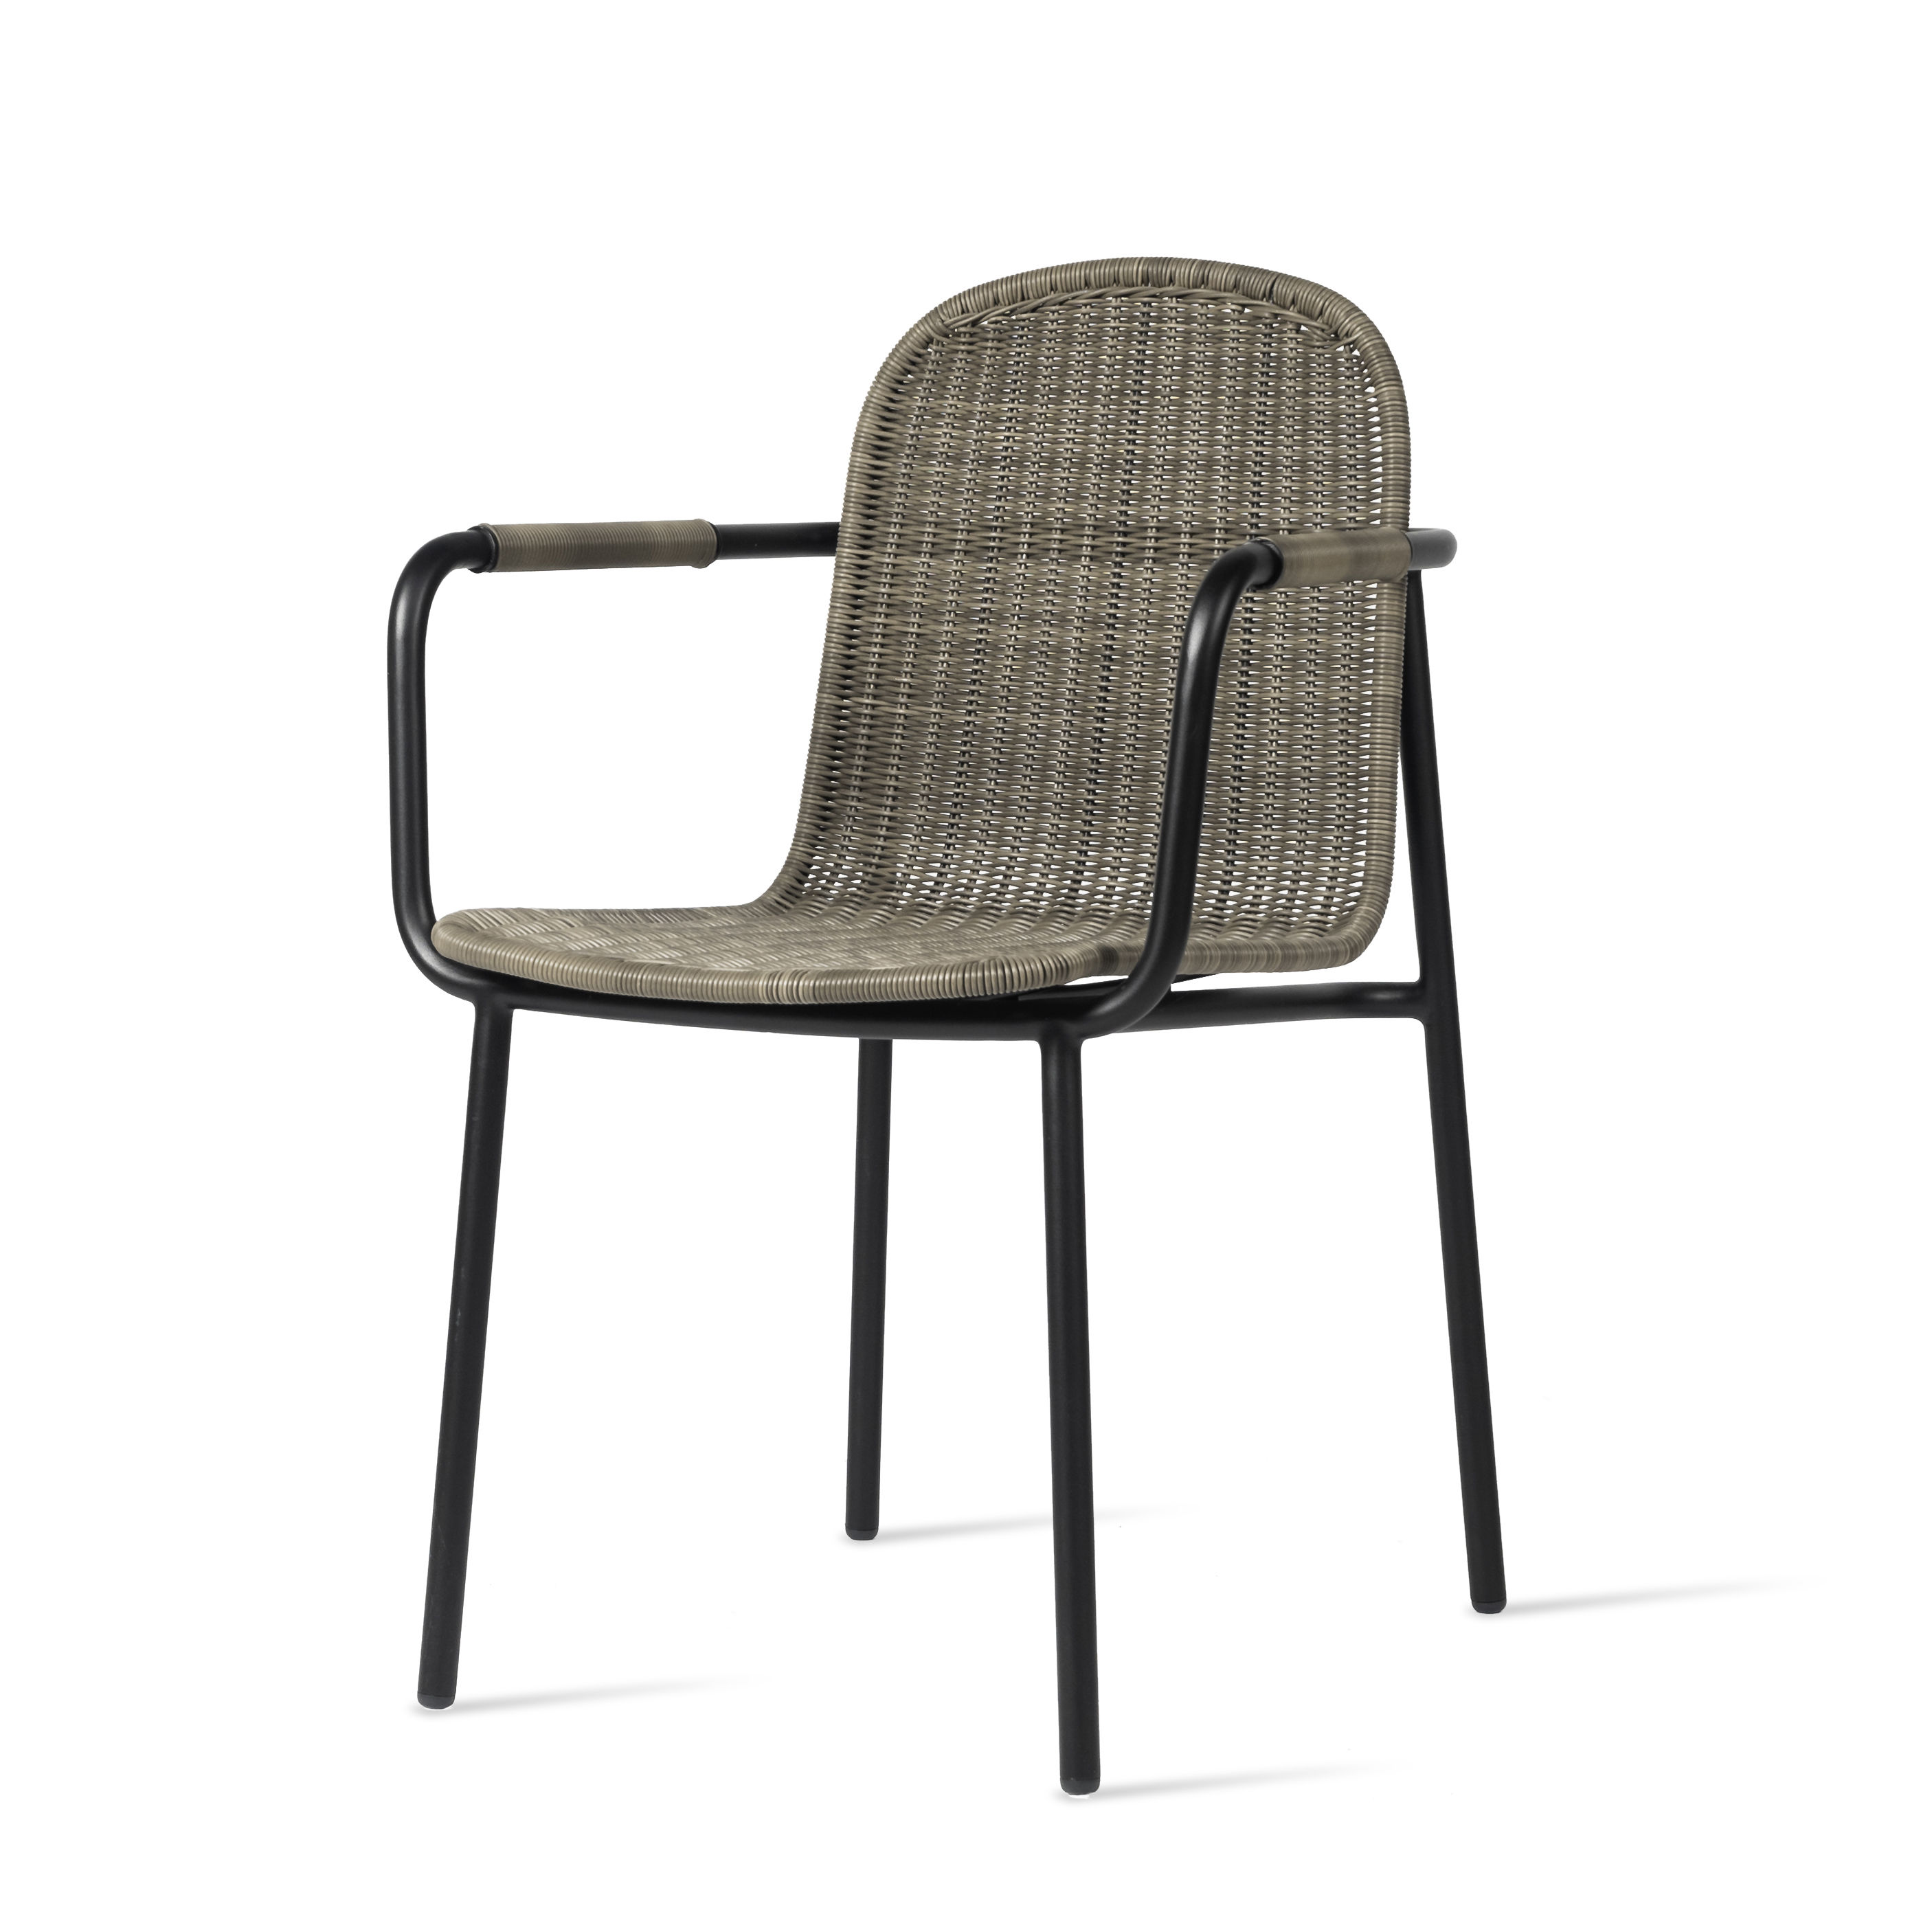 Furniture - Chairs - Wicked Armchair - / Hand-woven polyethylene by Vincent Sheppard - Taupe & black - Polythene resin, Thermolacquered aluminium